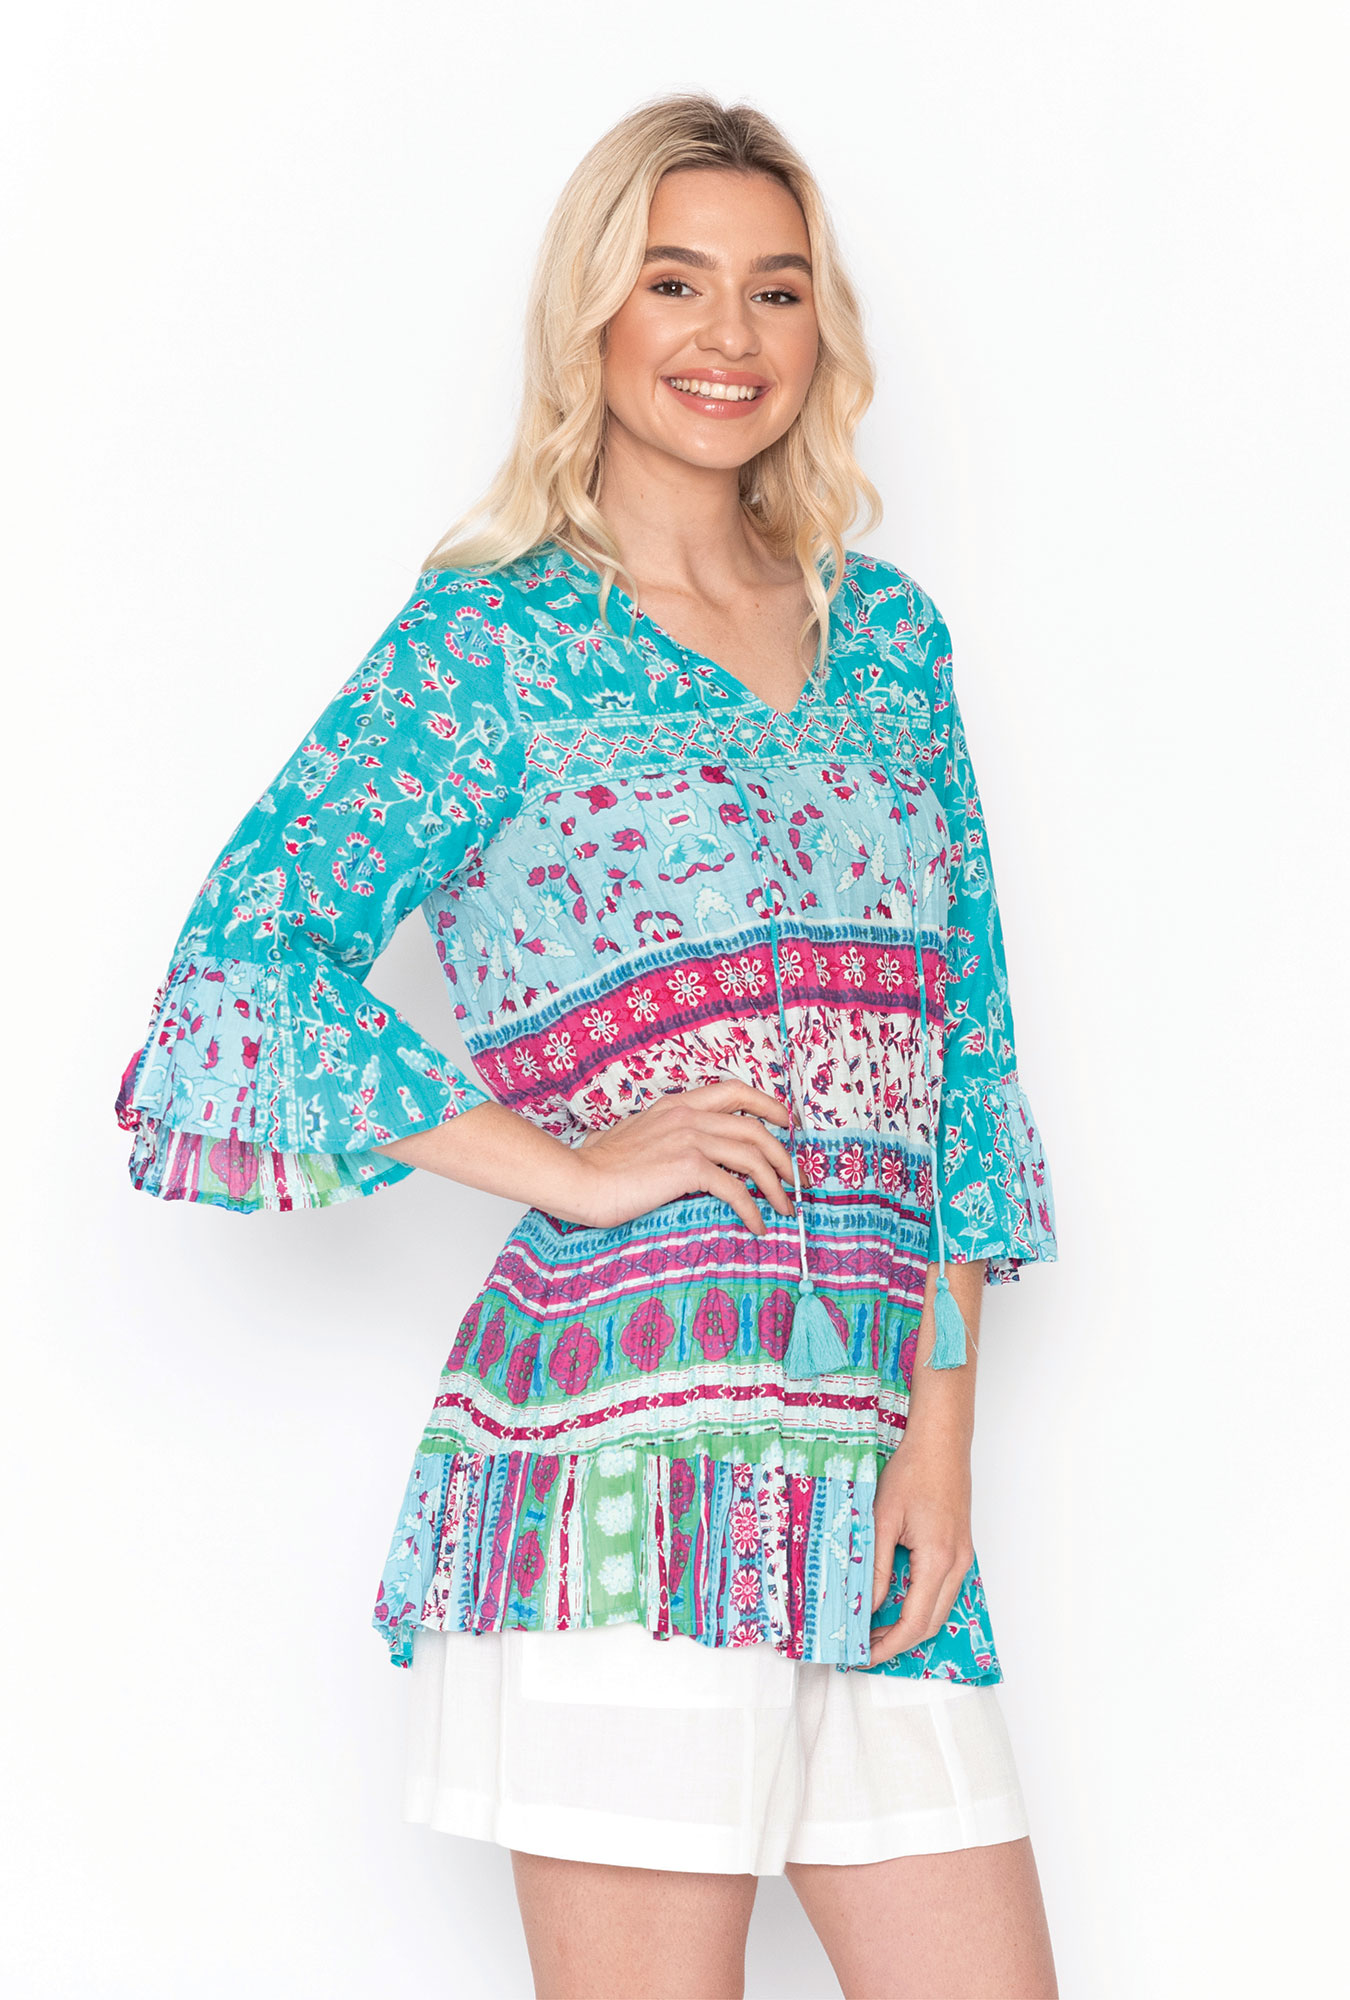 Solah Tunic in Aquamarine and Pink